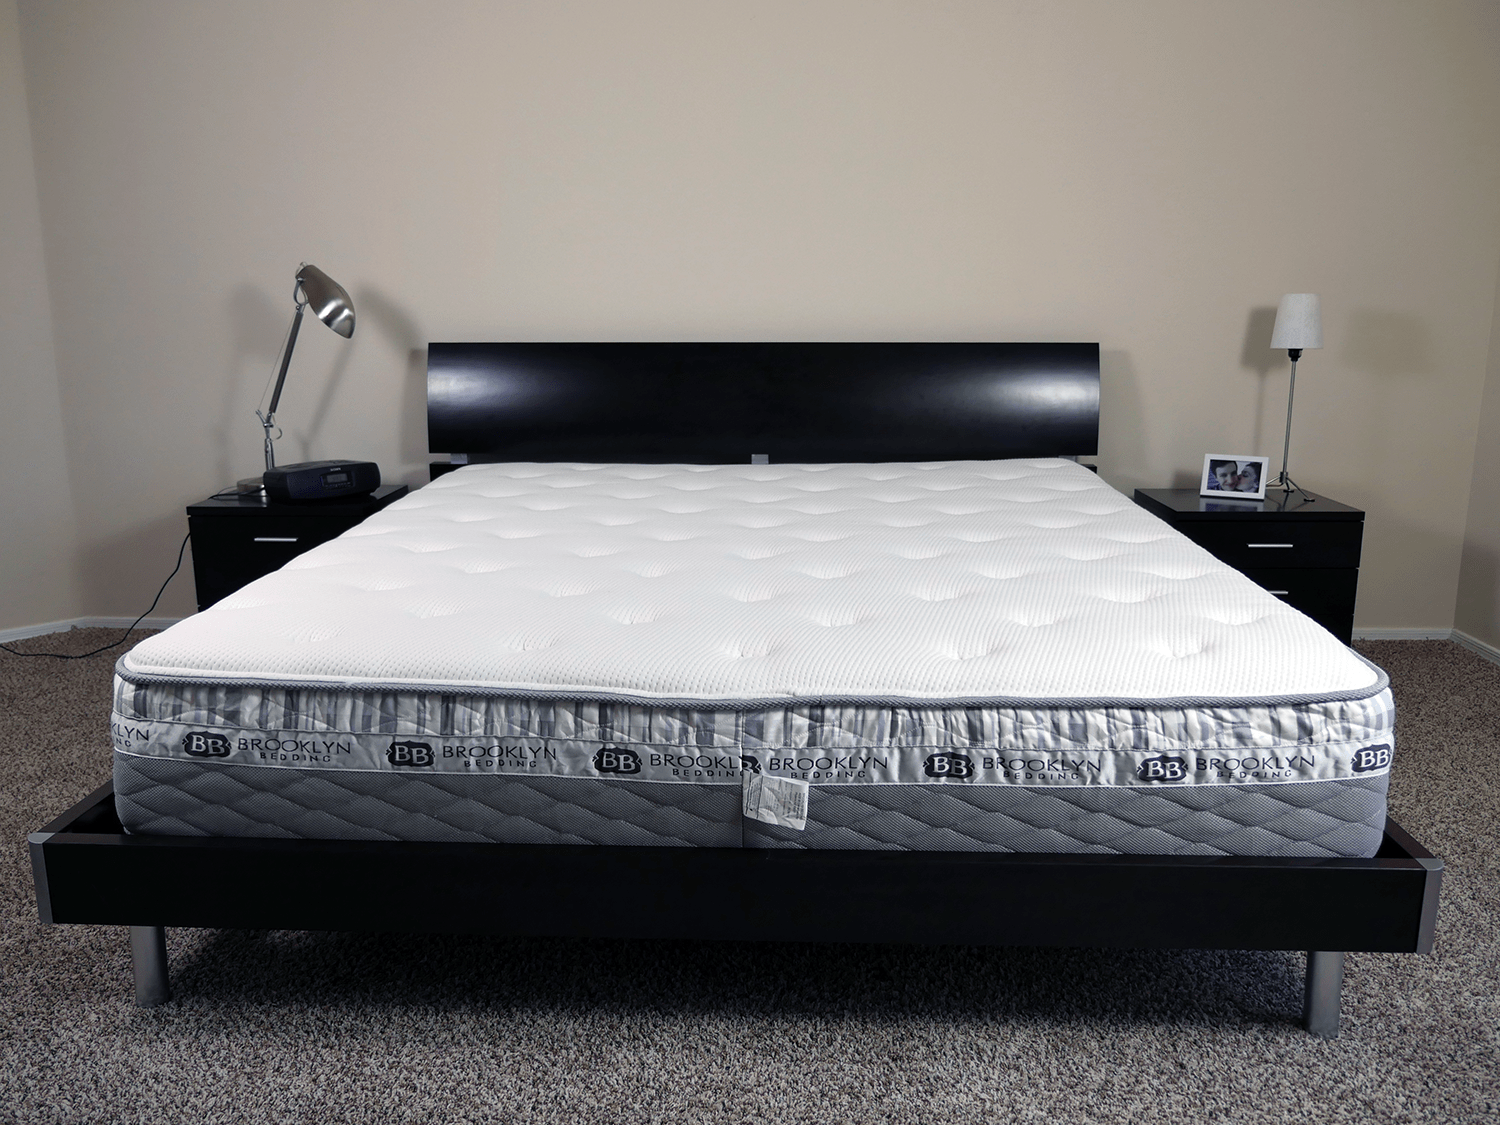 Best mattress for 2016 sleepopolis for Brooklyn bedding soft review